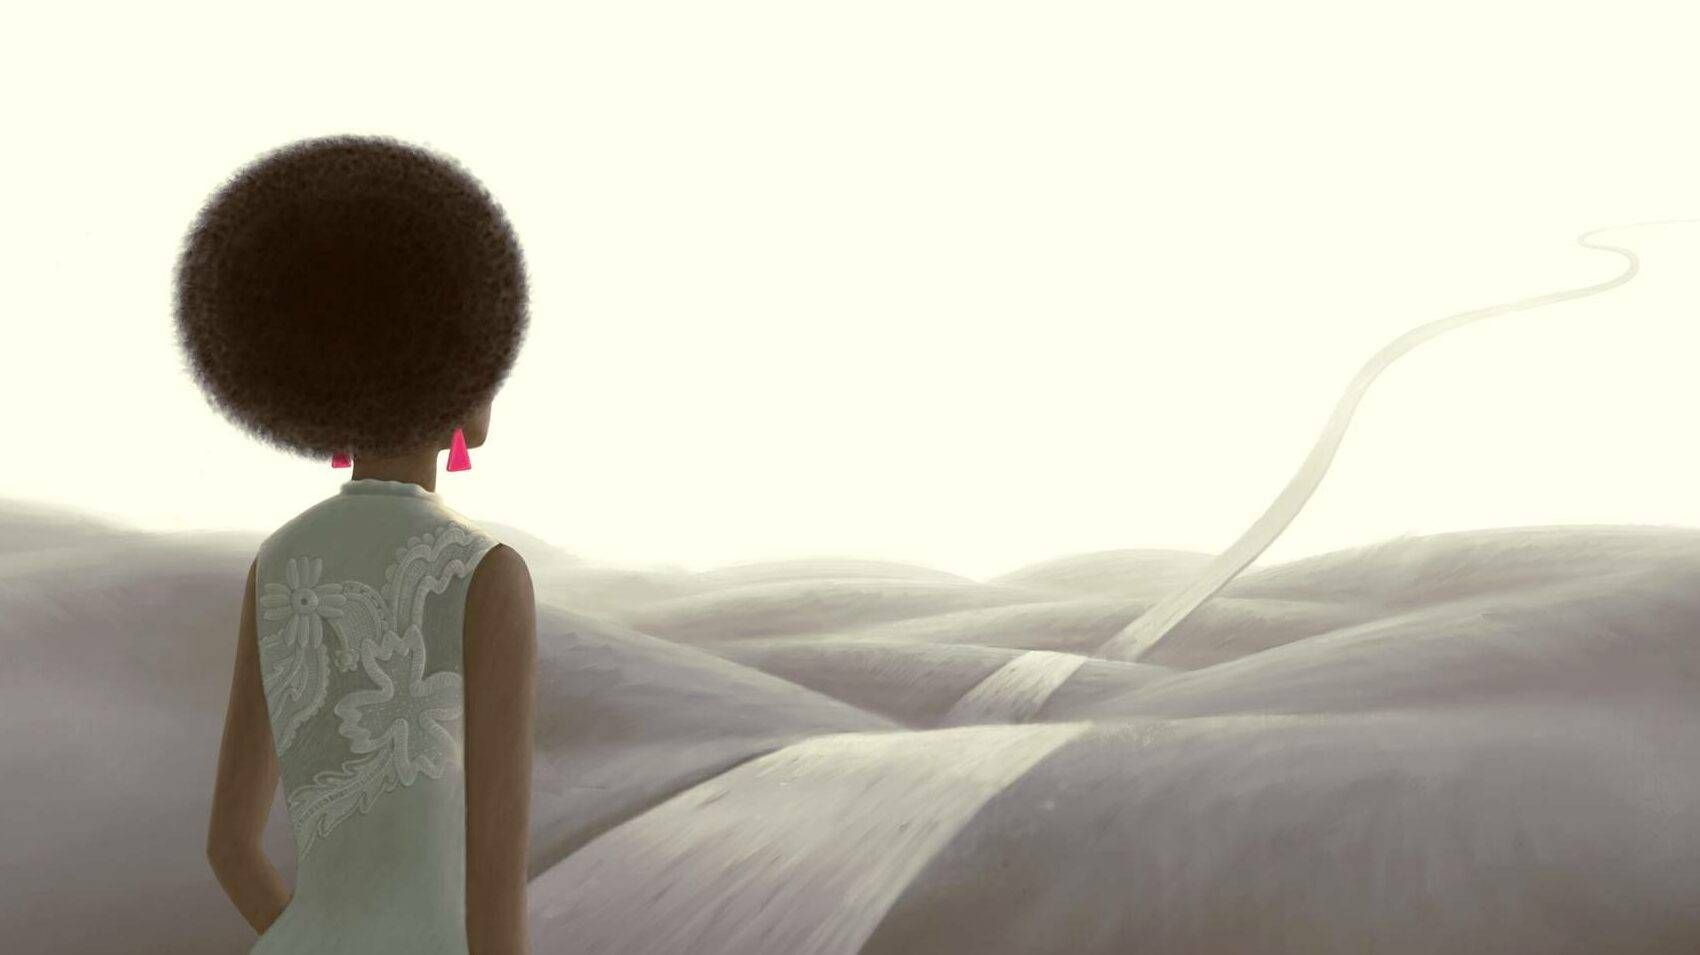 Illustration of black woman looking out a surreal landscape with a path rising into the sky, black youth, religious paths